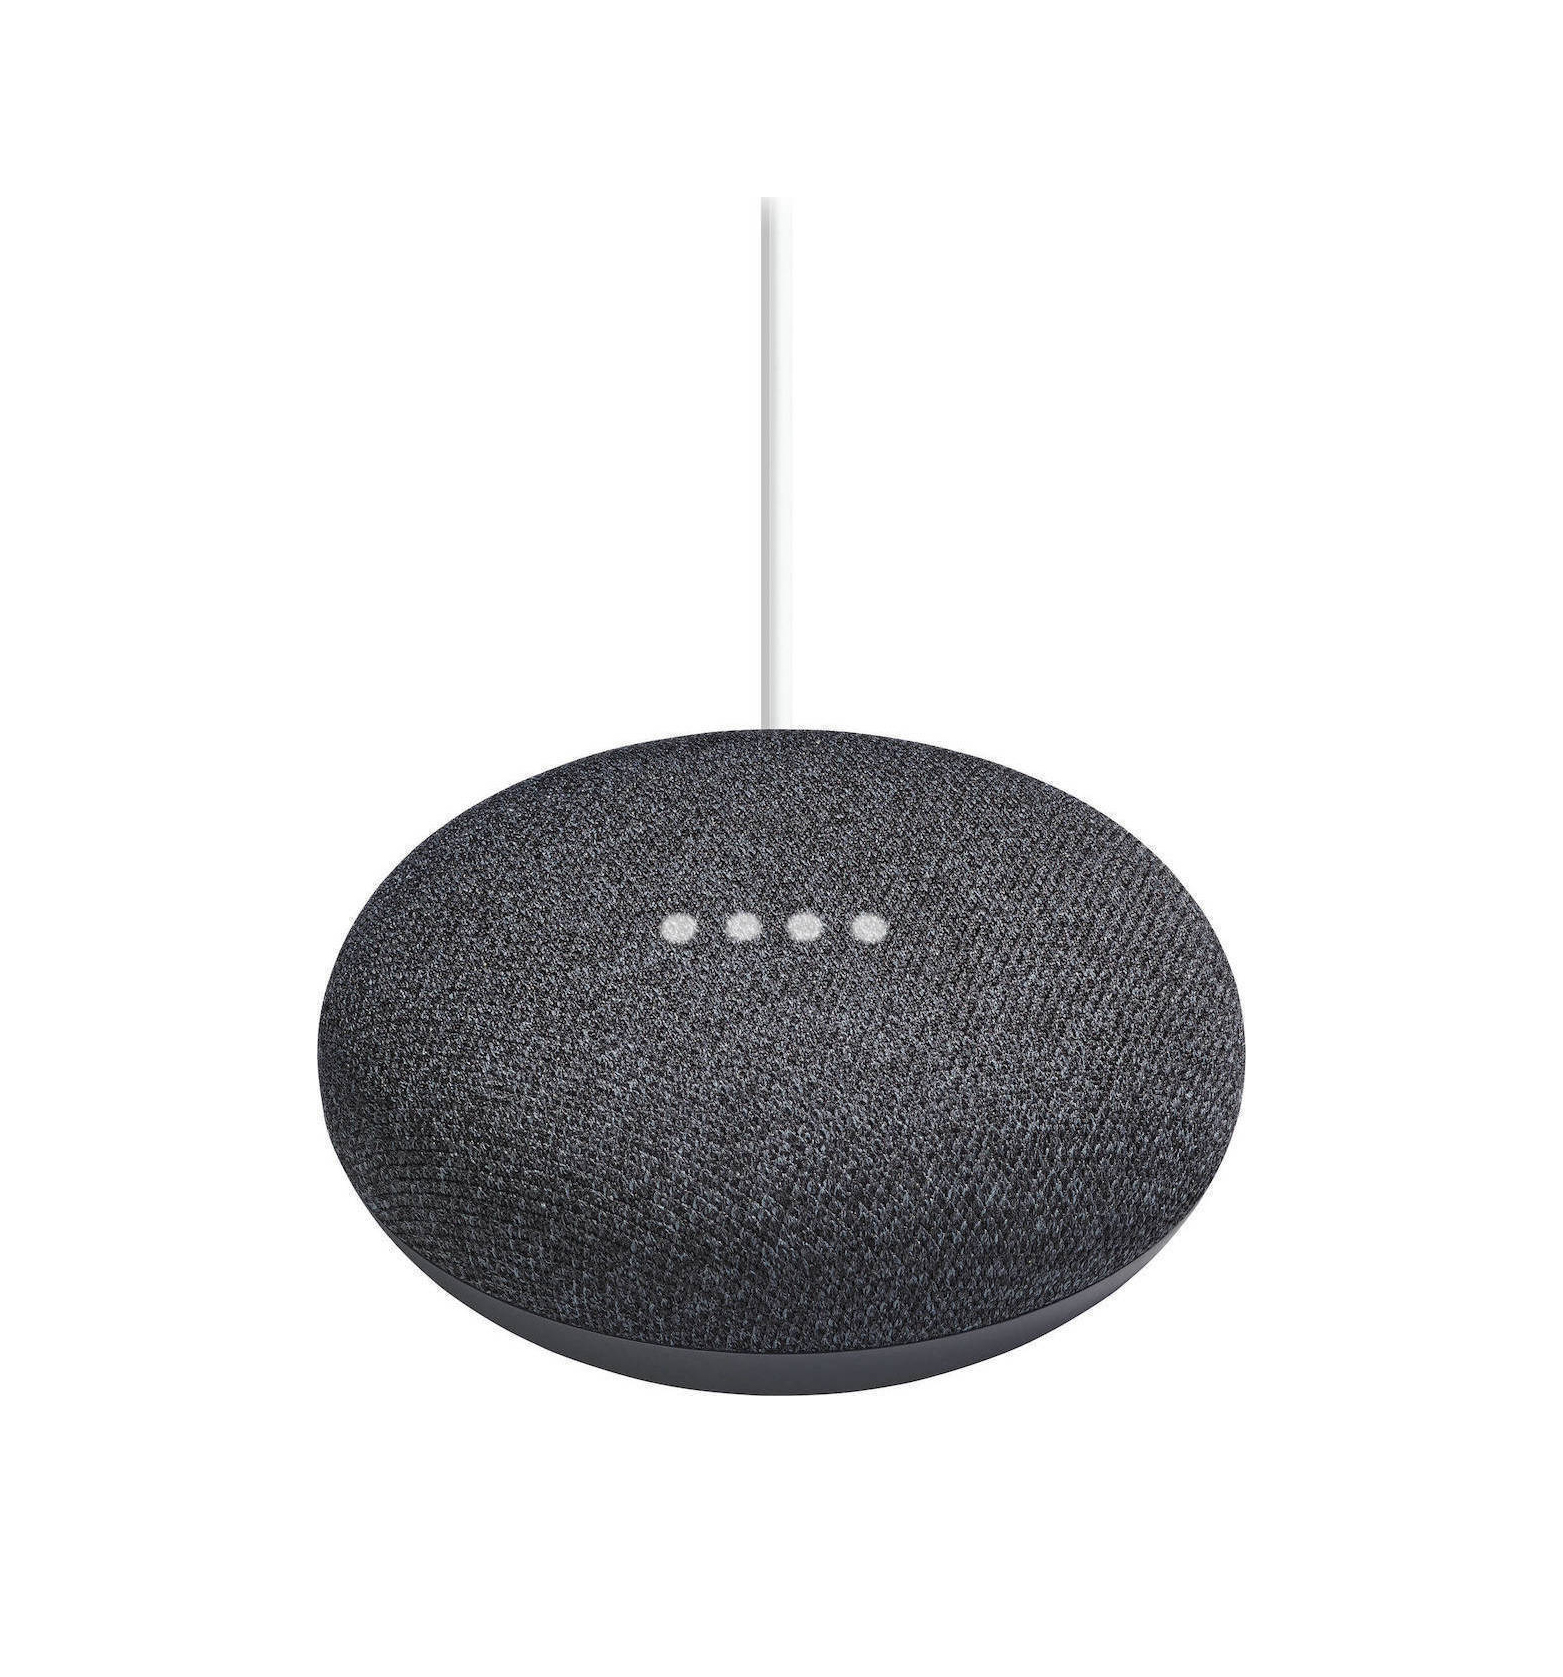 Google Nest Mini (2nd Gen) Charcoal Smart Hub Mε Aντάπτορα